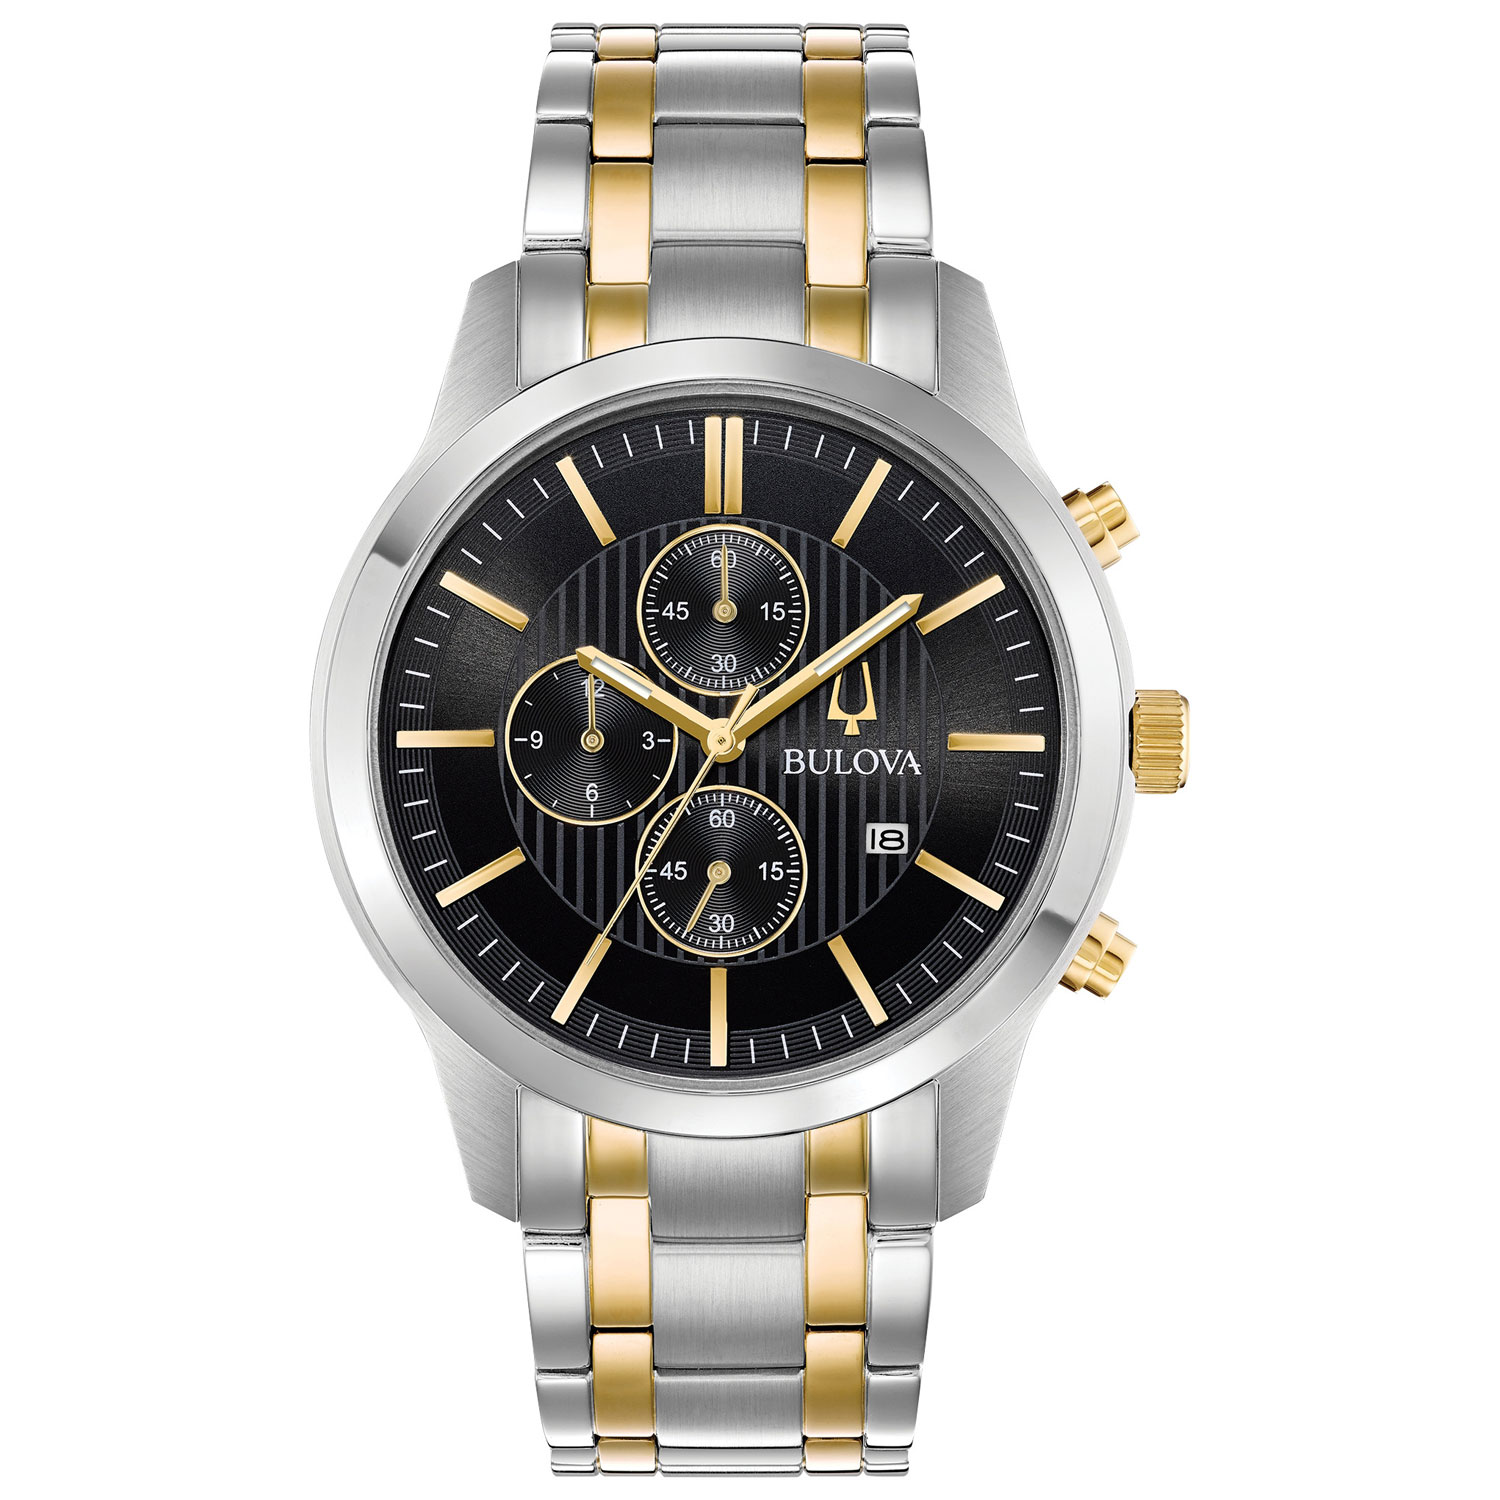 relogio brand lige luxury men mens gold business full watch top masculino casual clock steel fashion sport quartz waterproof watches